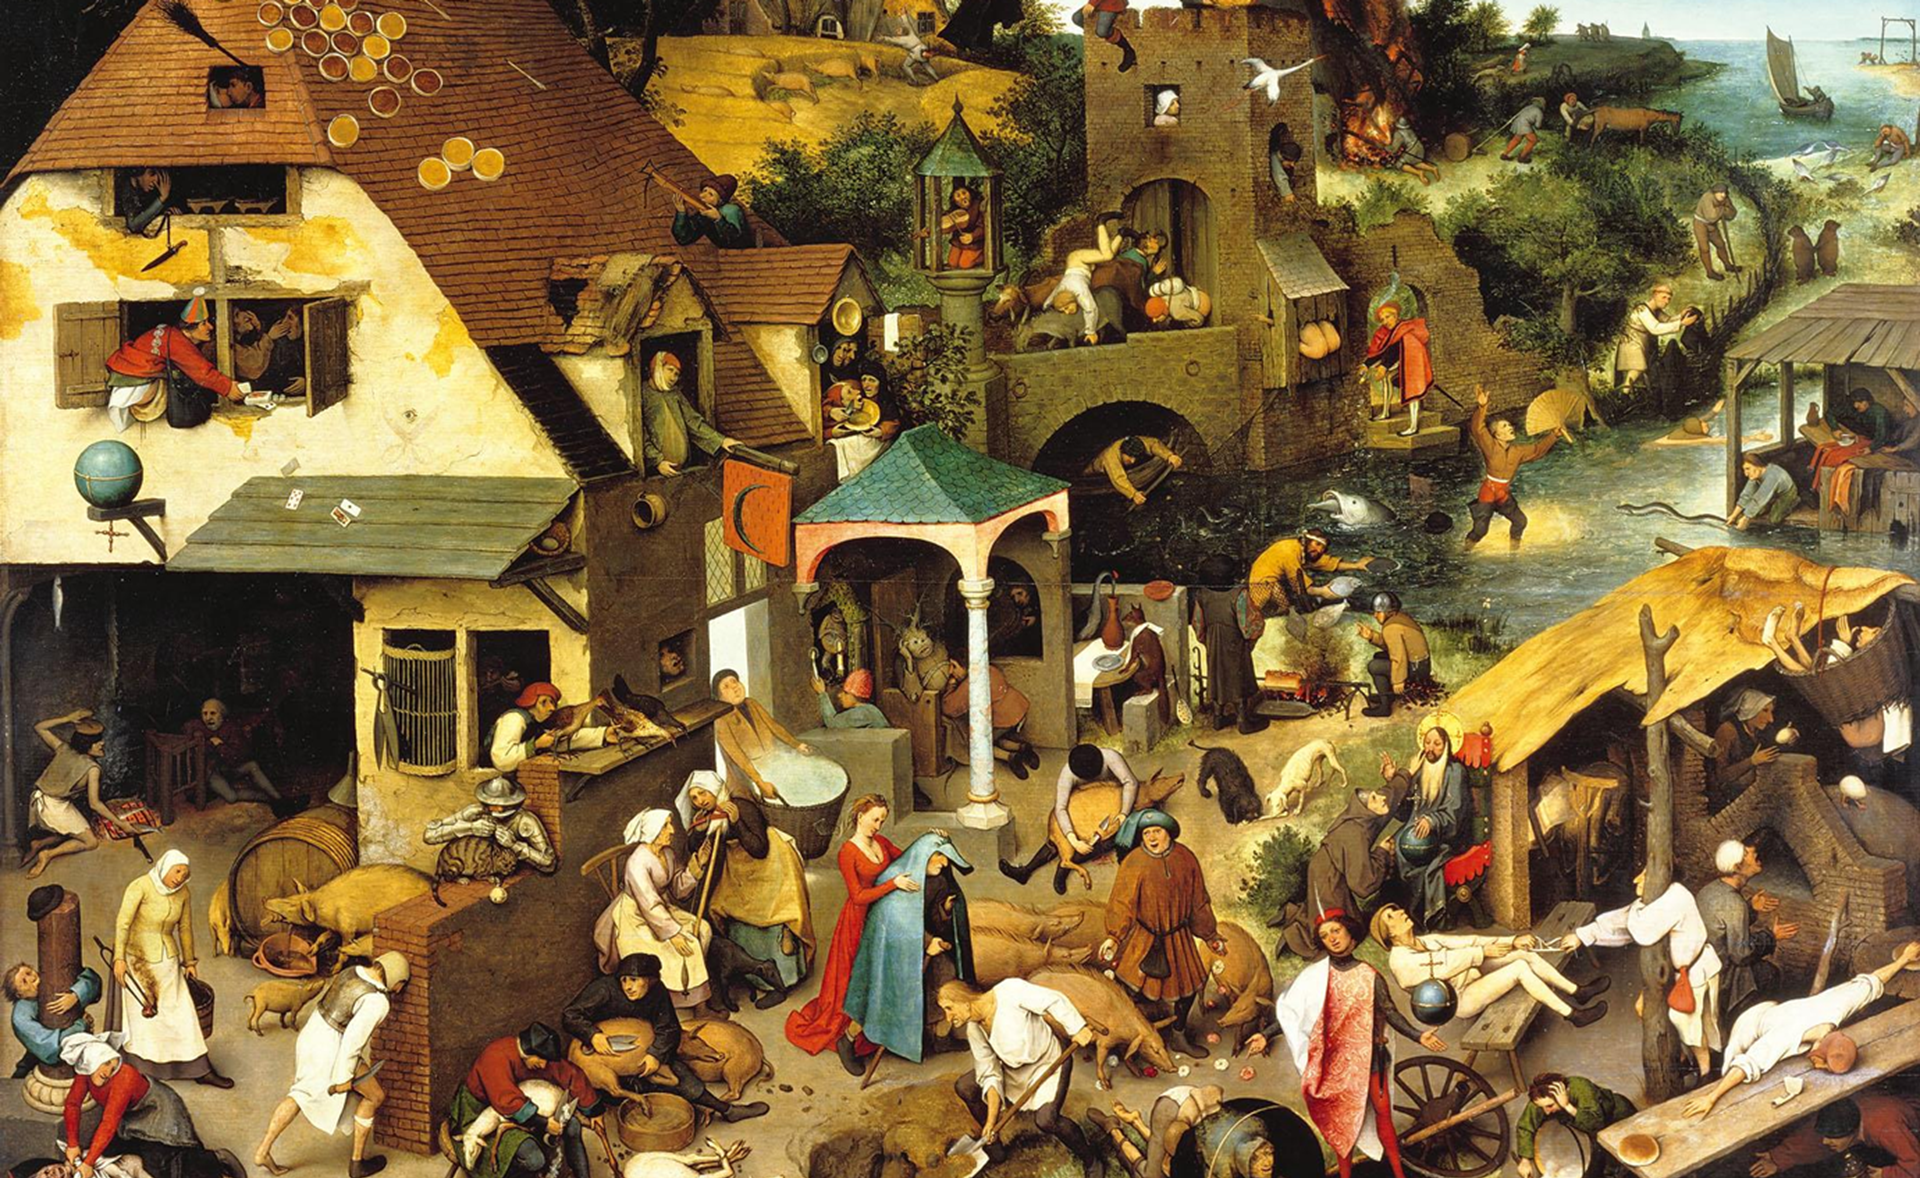 The Good Old Days of Poverty and Filth - Foundation for